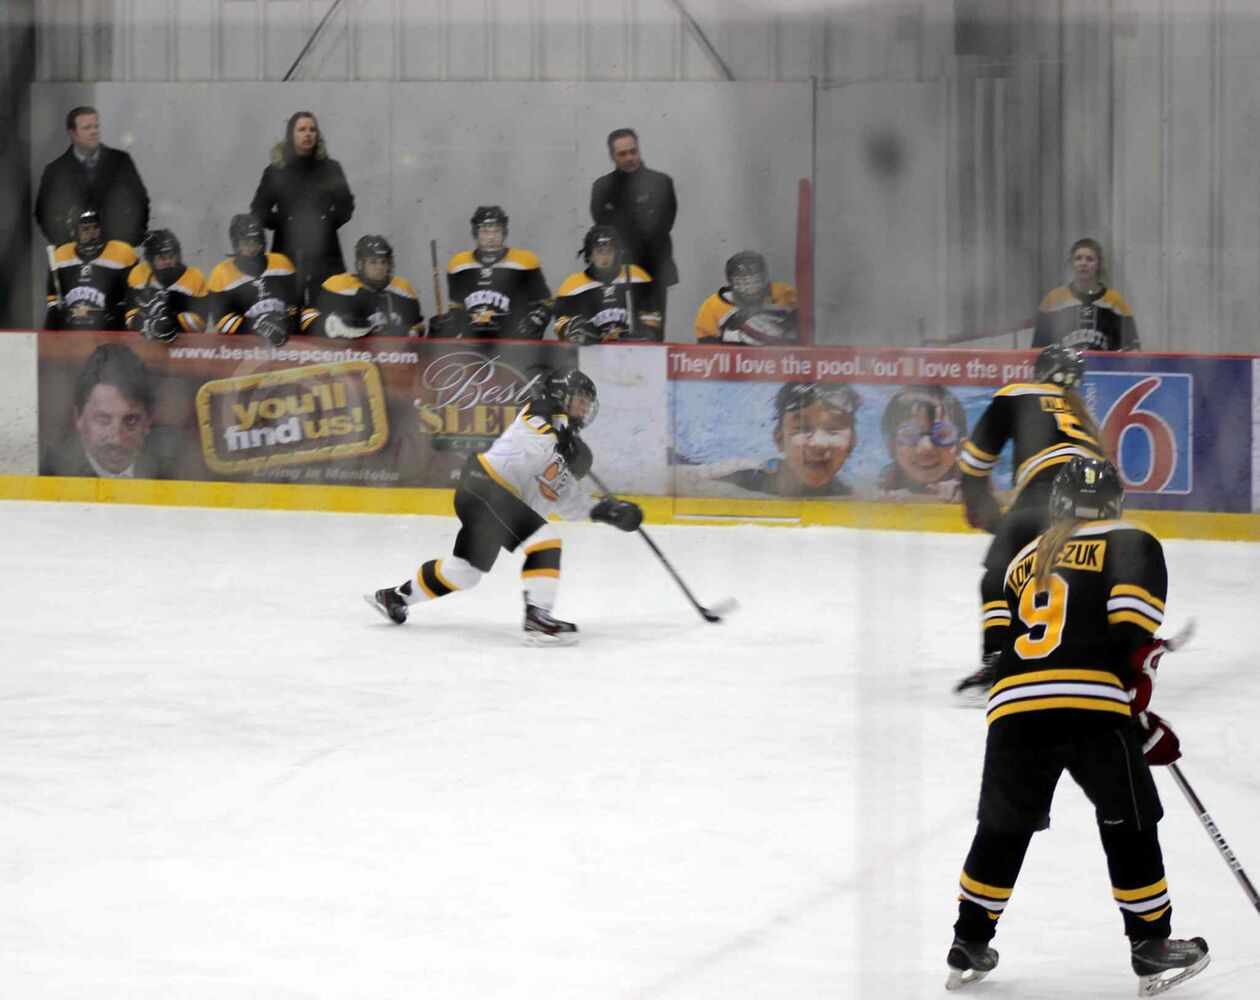 The Dakota Lancers defeated the Fort Richmond Centurions 2-0 in the WWHSHL Division A Championships March 13, 2014.  (Steph Crosier)